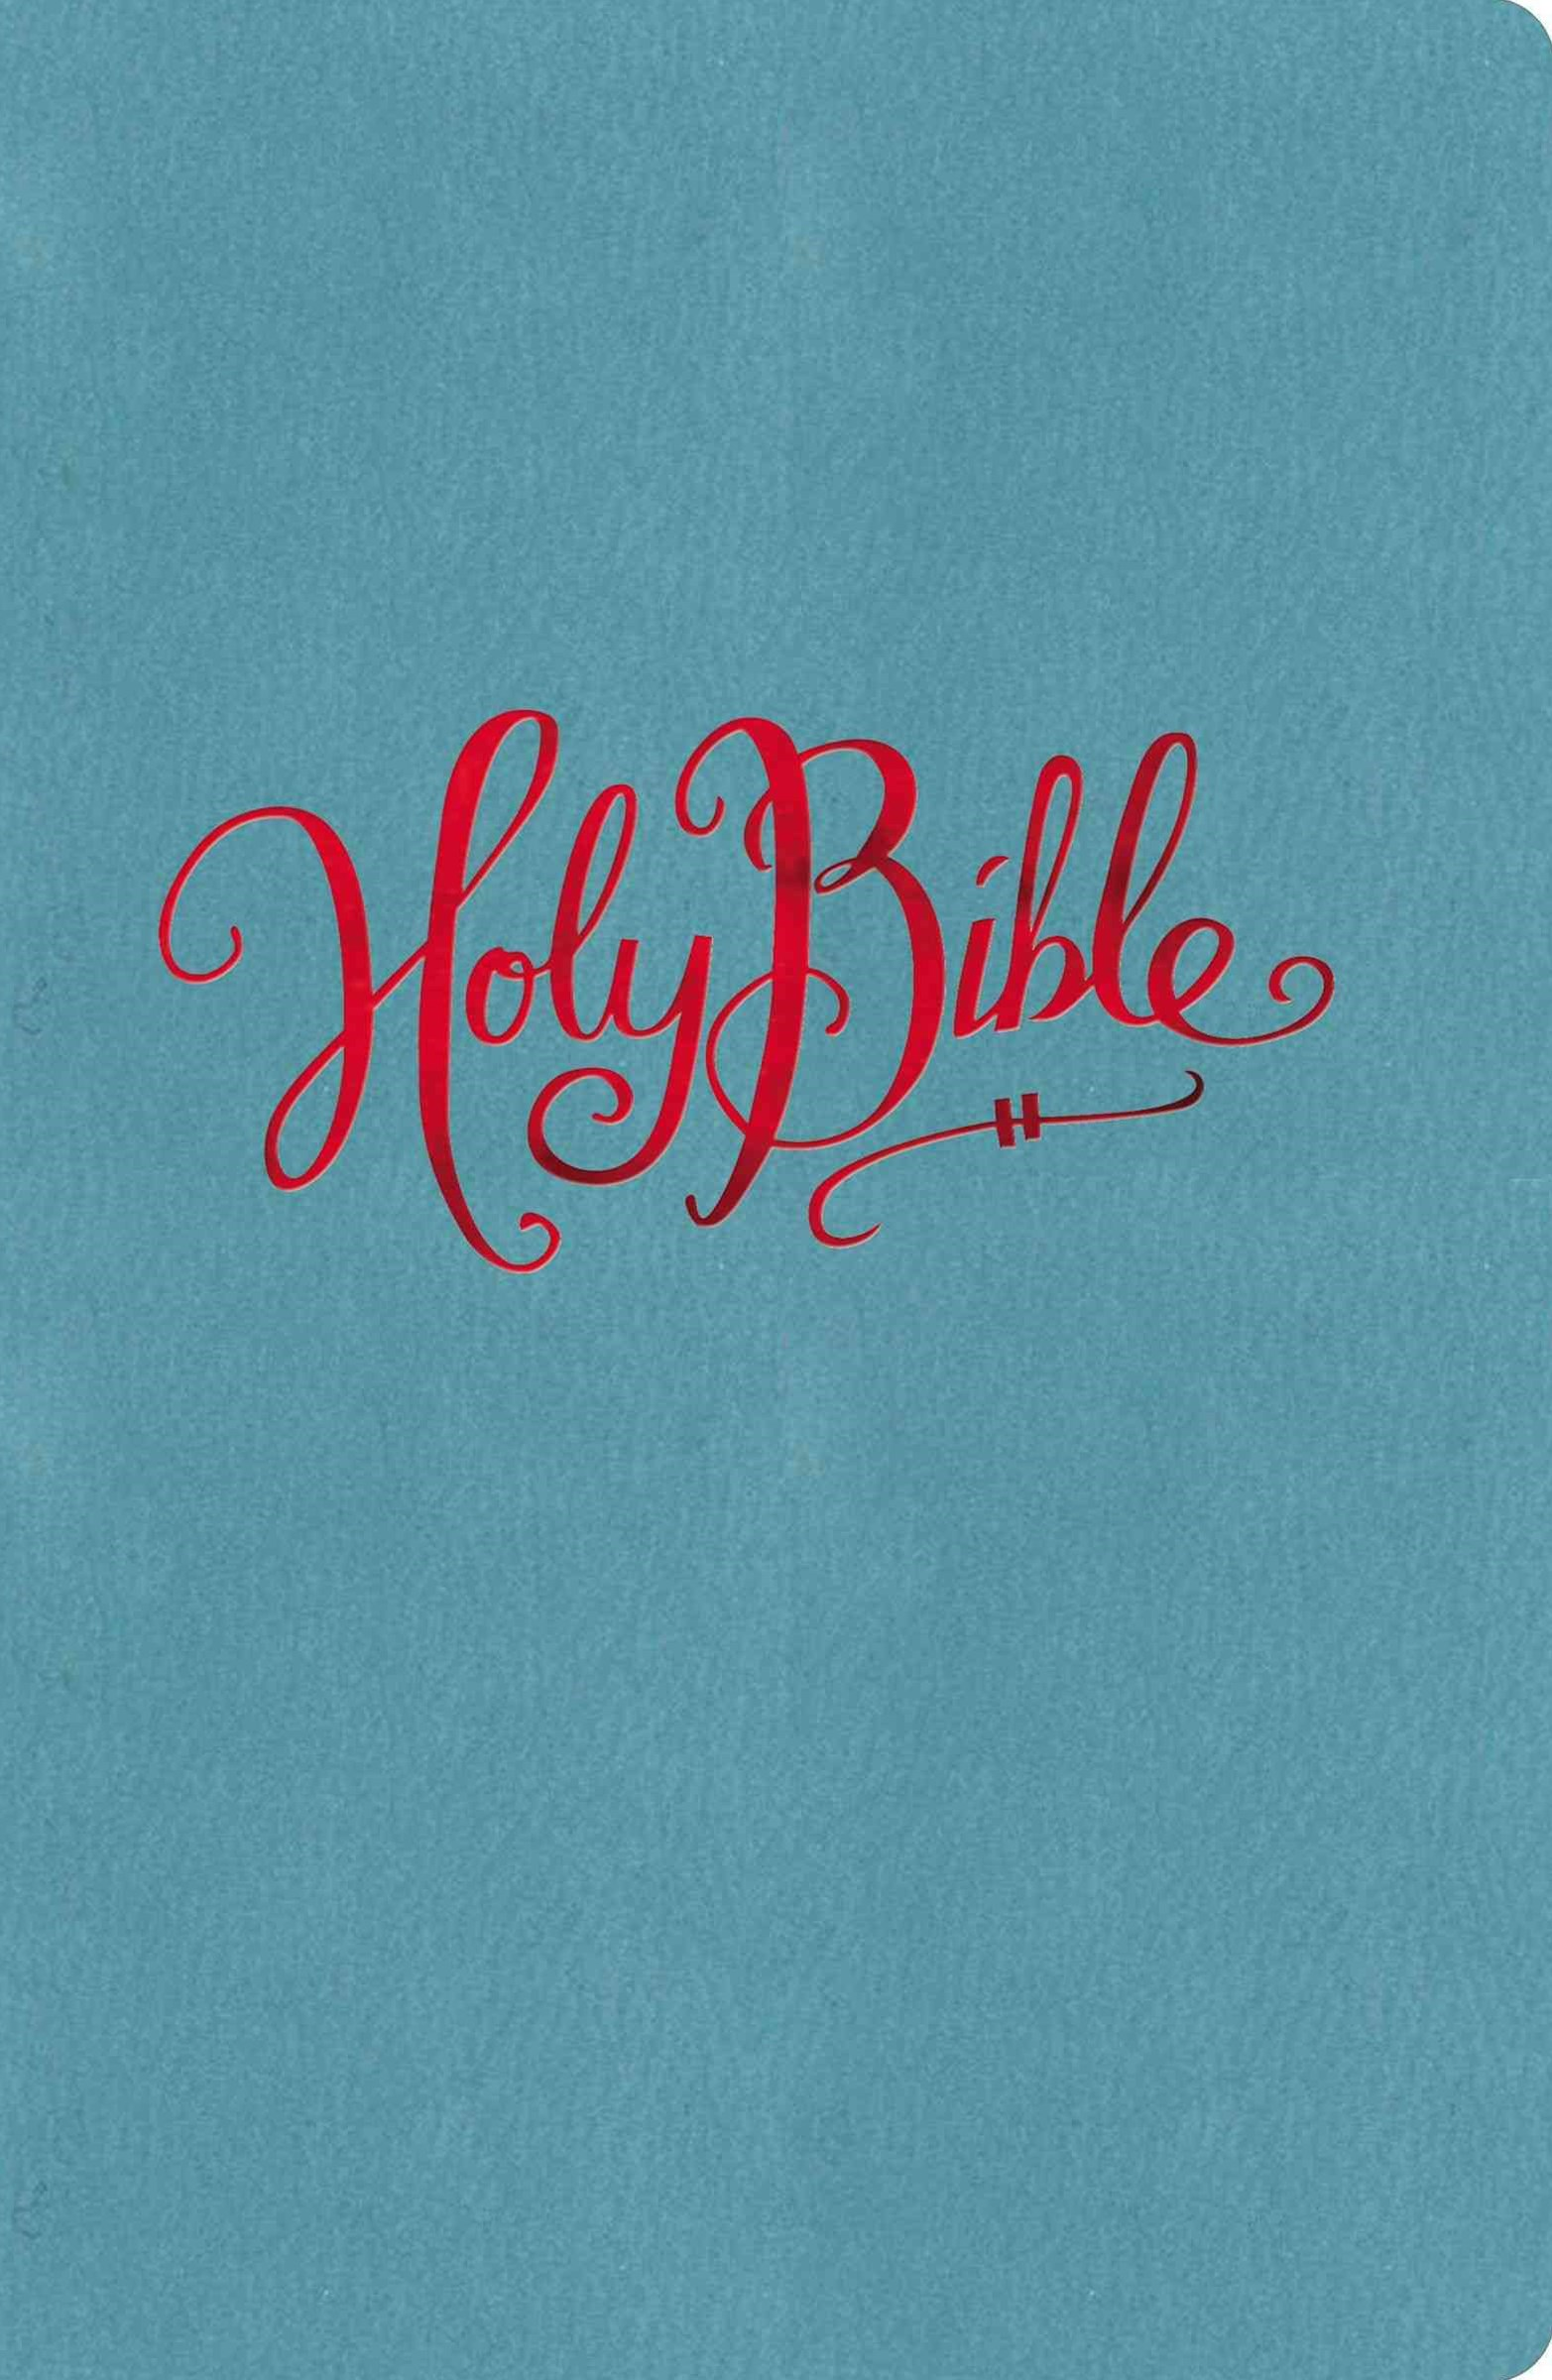 NKJV, Reference Bible, Compact, Large Print, Imitation Leather, Turquoise, Red Letter Edition: Large Print, Compact